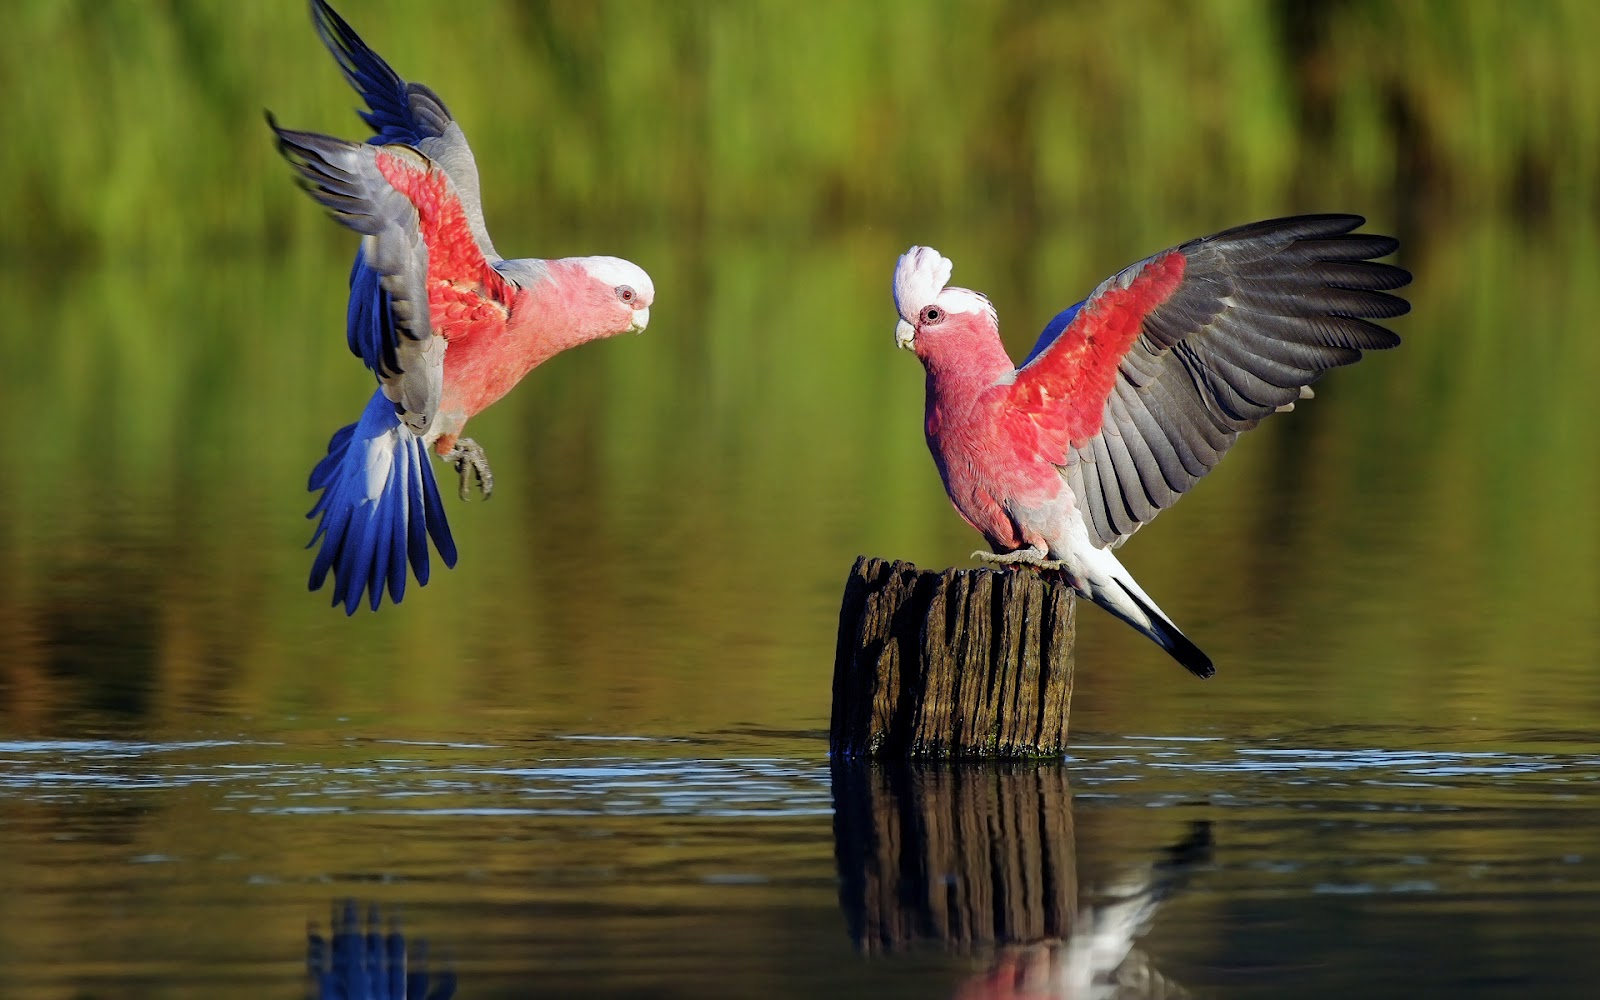 Love Birds Hd Wallpapers And Images Free Download: AVES EXOTICAS: Febrero 2013